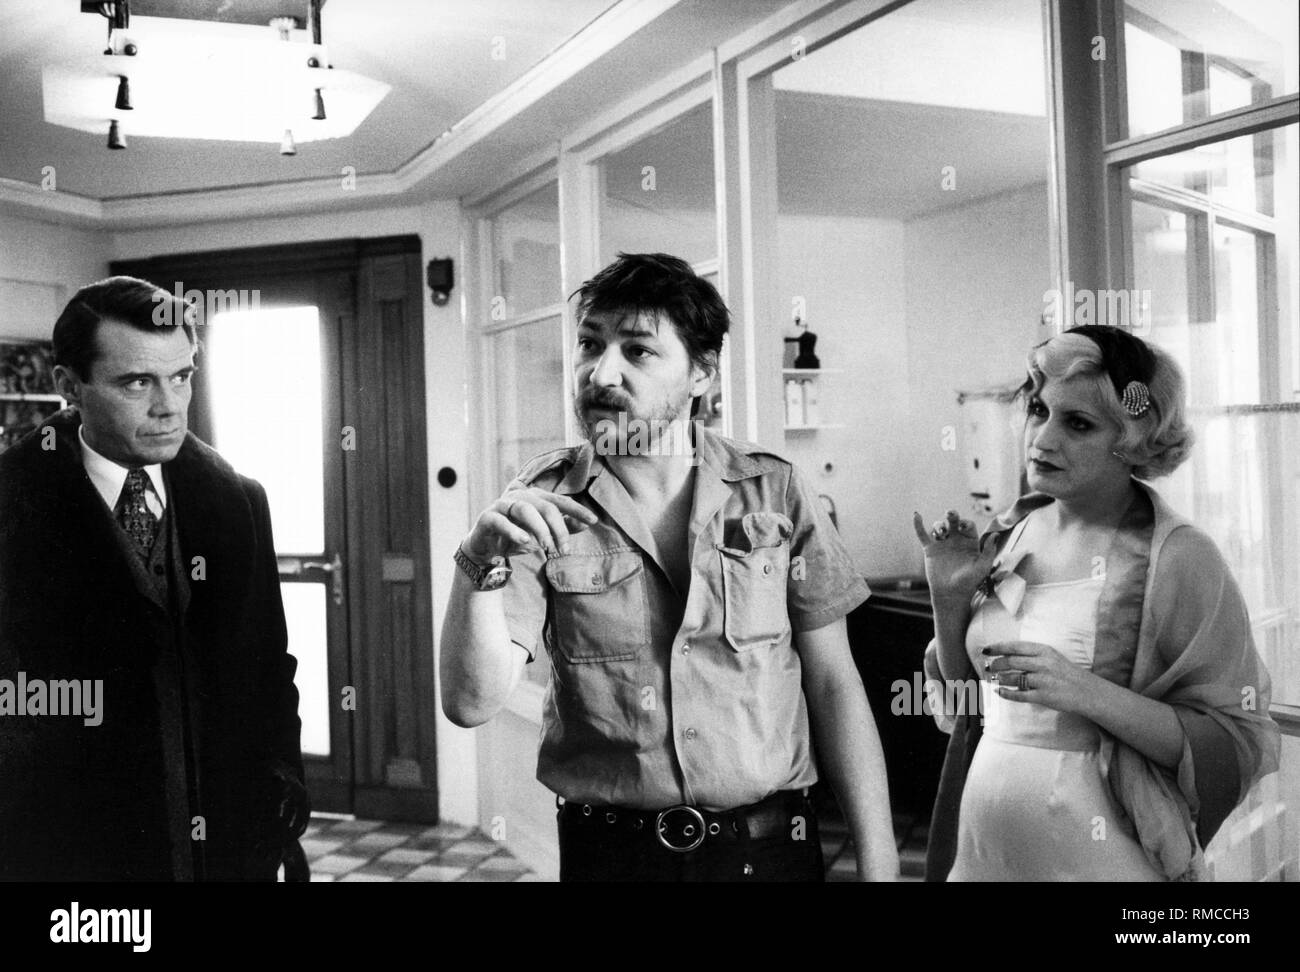 Andréa Ferréol rainer werner fassbinder (center) gives direction to the